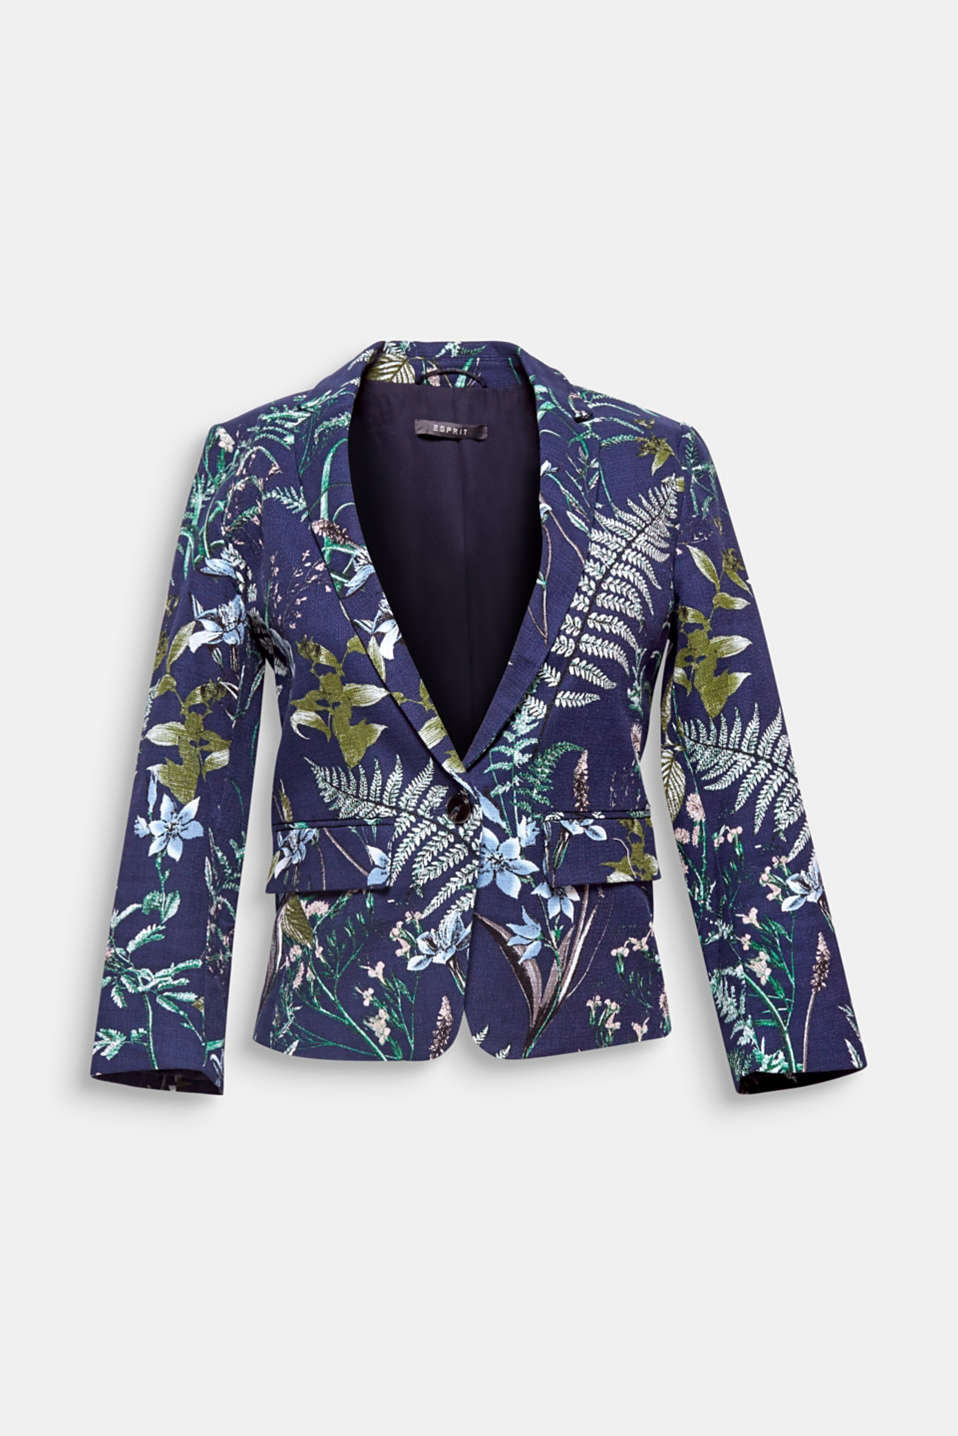 A fashionable highlight for your summer wardrobe: cropped blazer made of textured cotton with a botanical print and stretch for comfort.